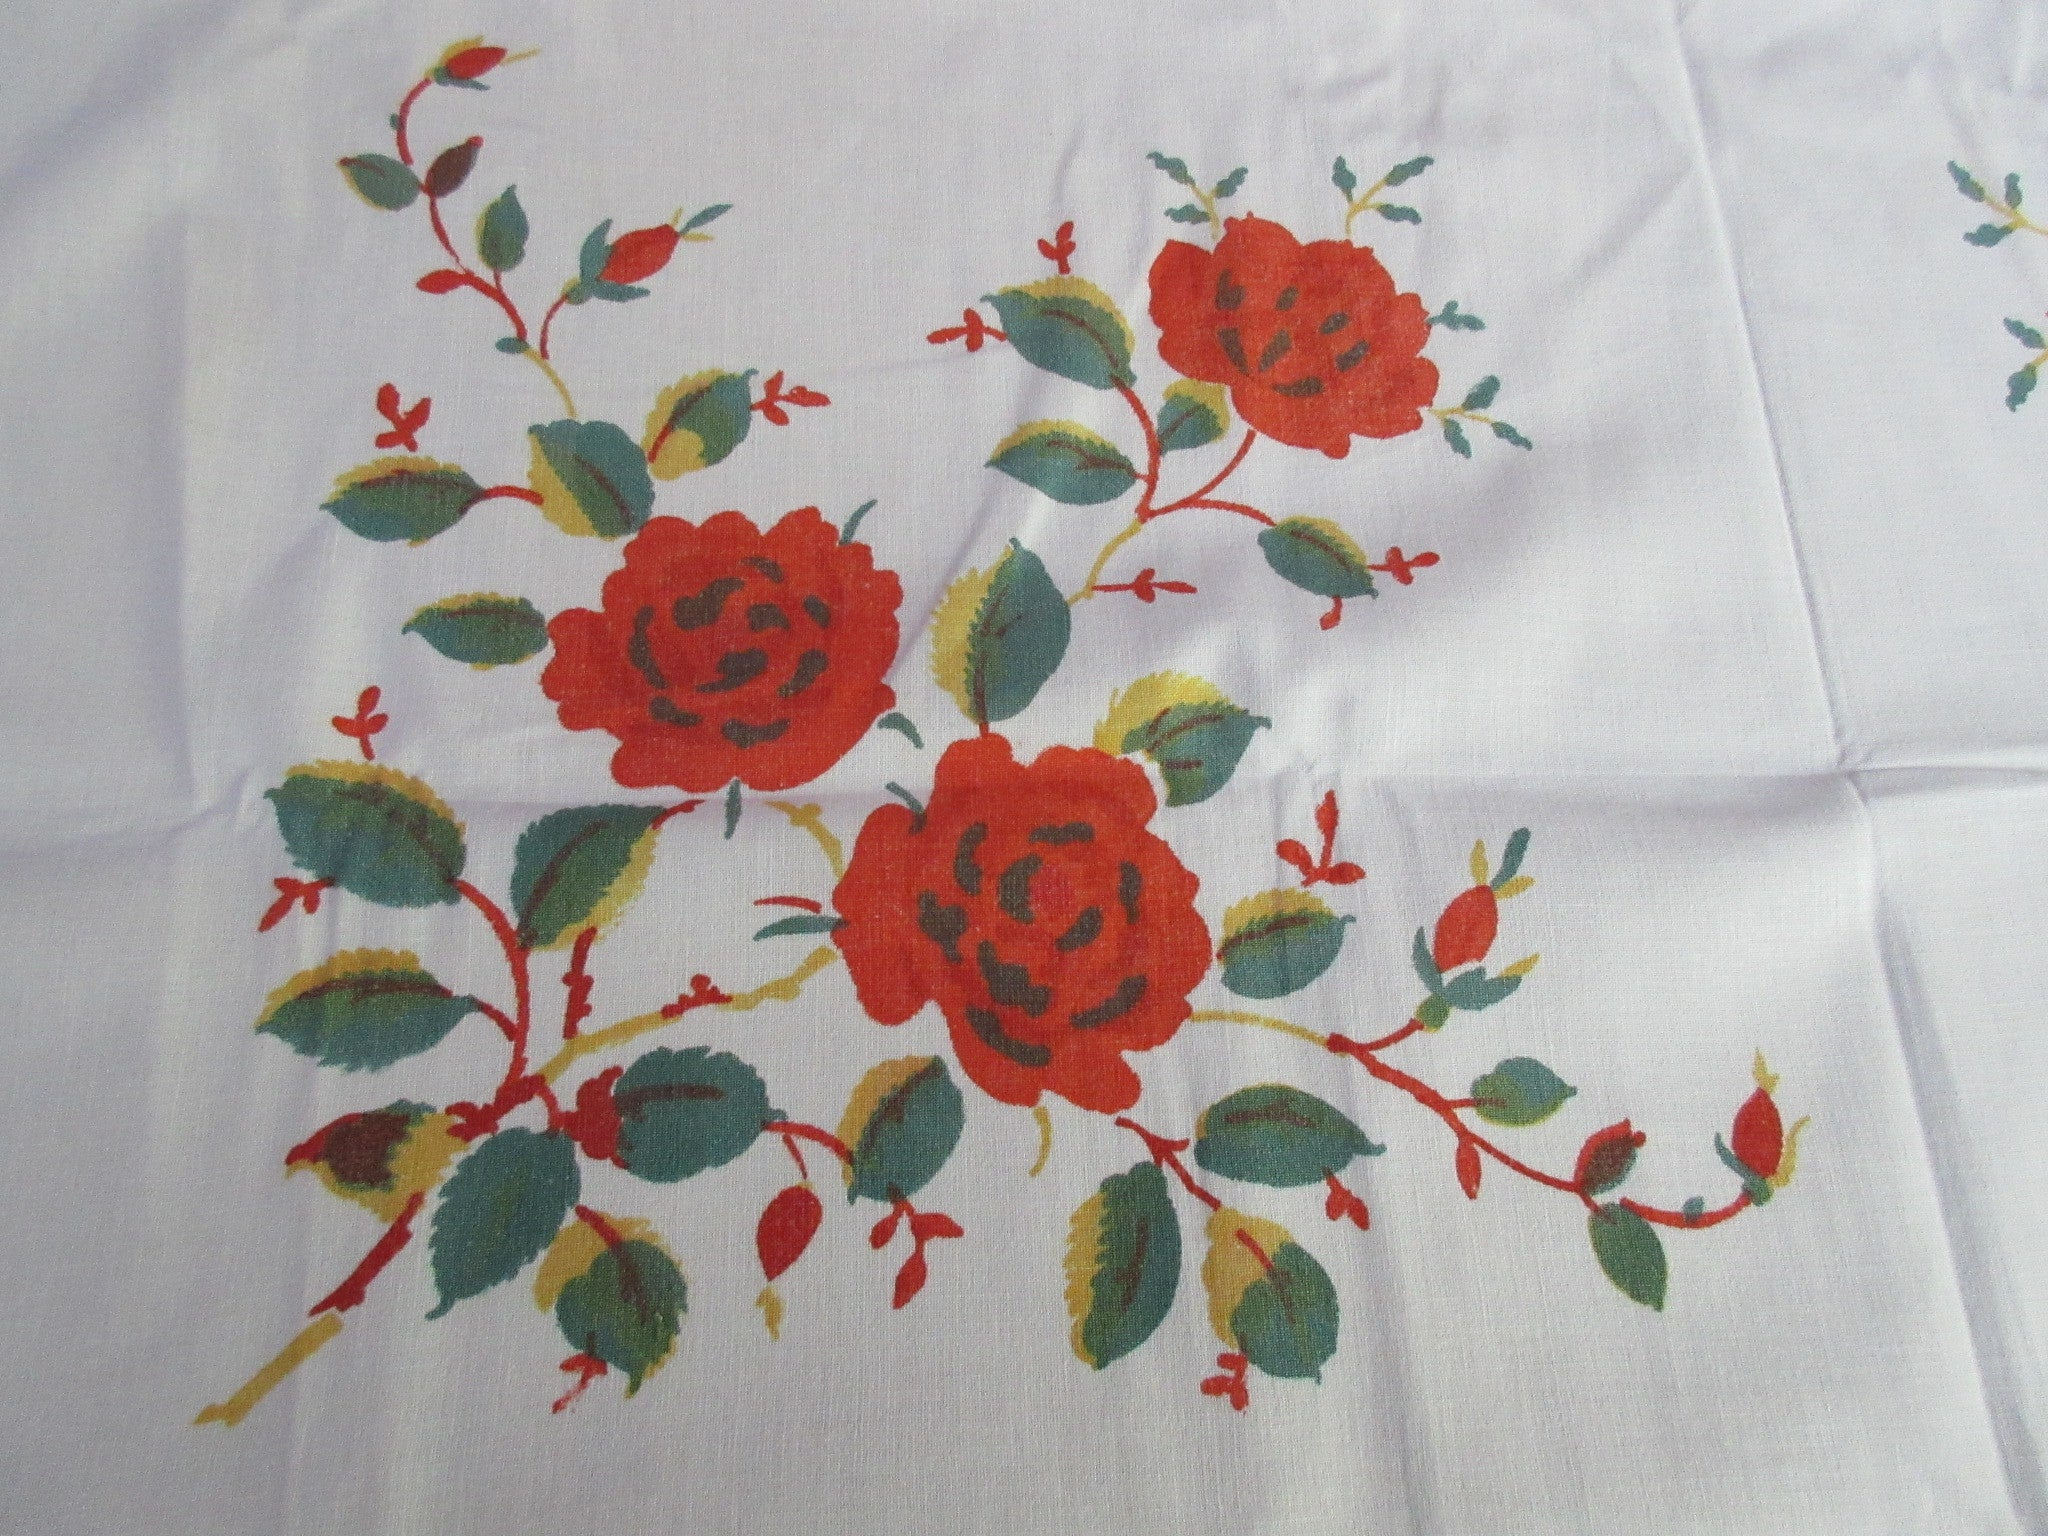 Early Orange Green Chrysanthemums Floral Vintage Printed Tablecloth (47 X 46)